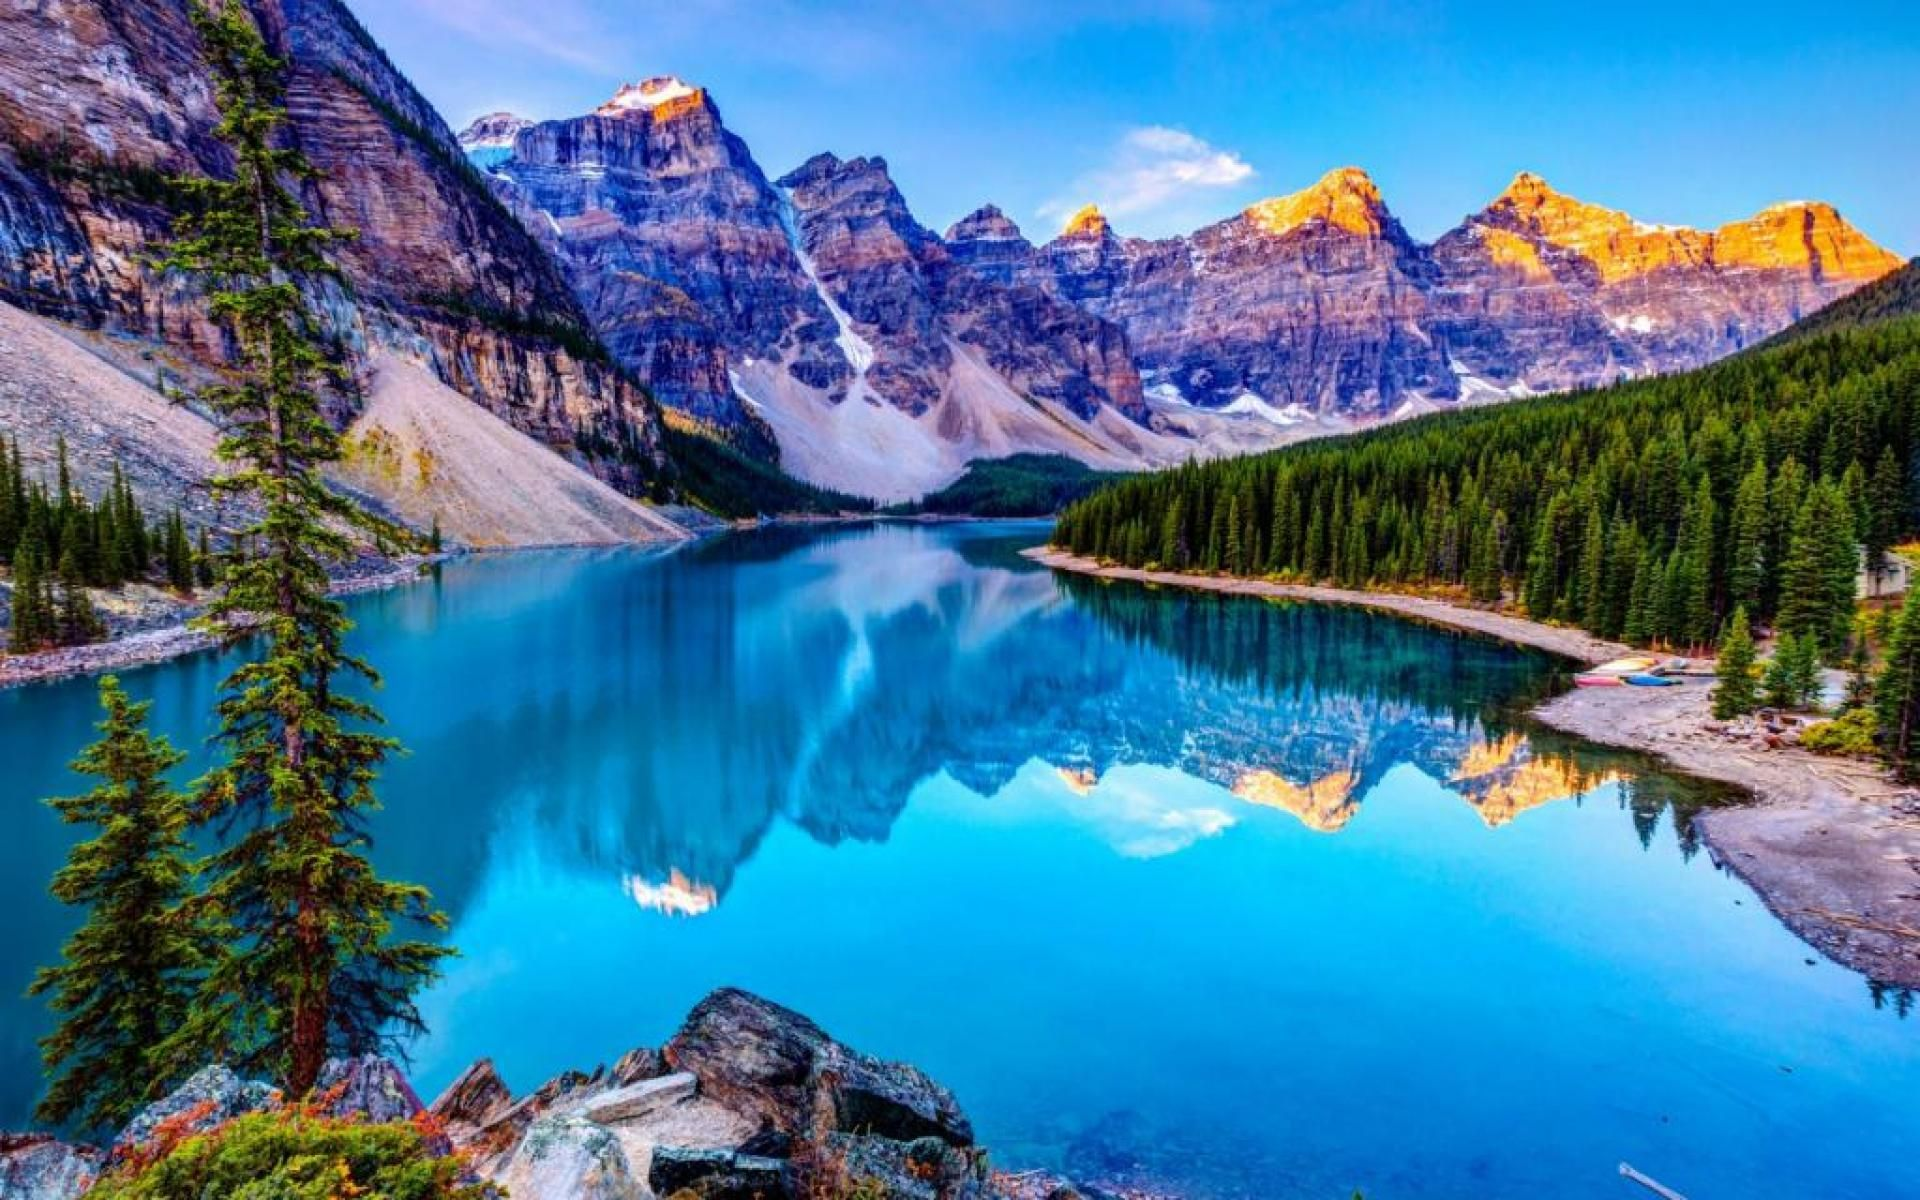 Mirror Lake Hd Wallpapers Nature Photography Beautiful Nature Beautiful Landscapes Hd wallpaper lake ice mountains valley